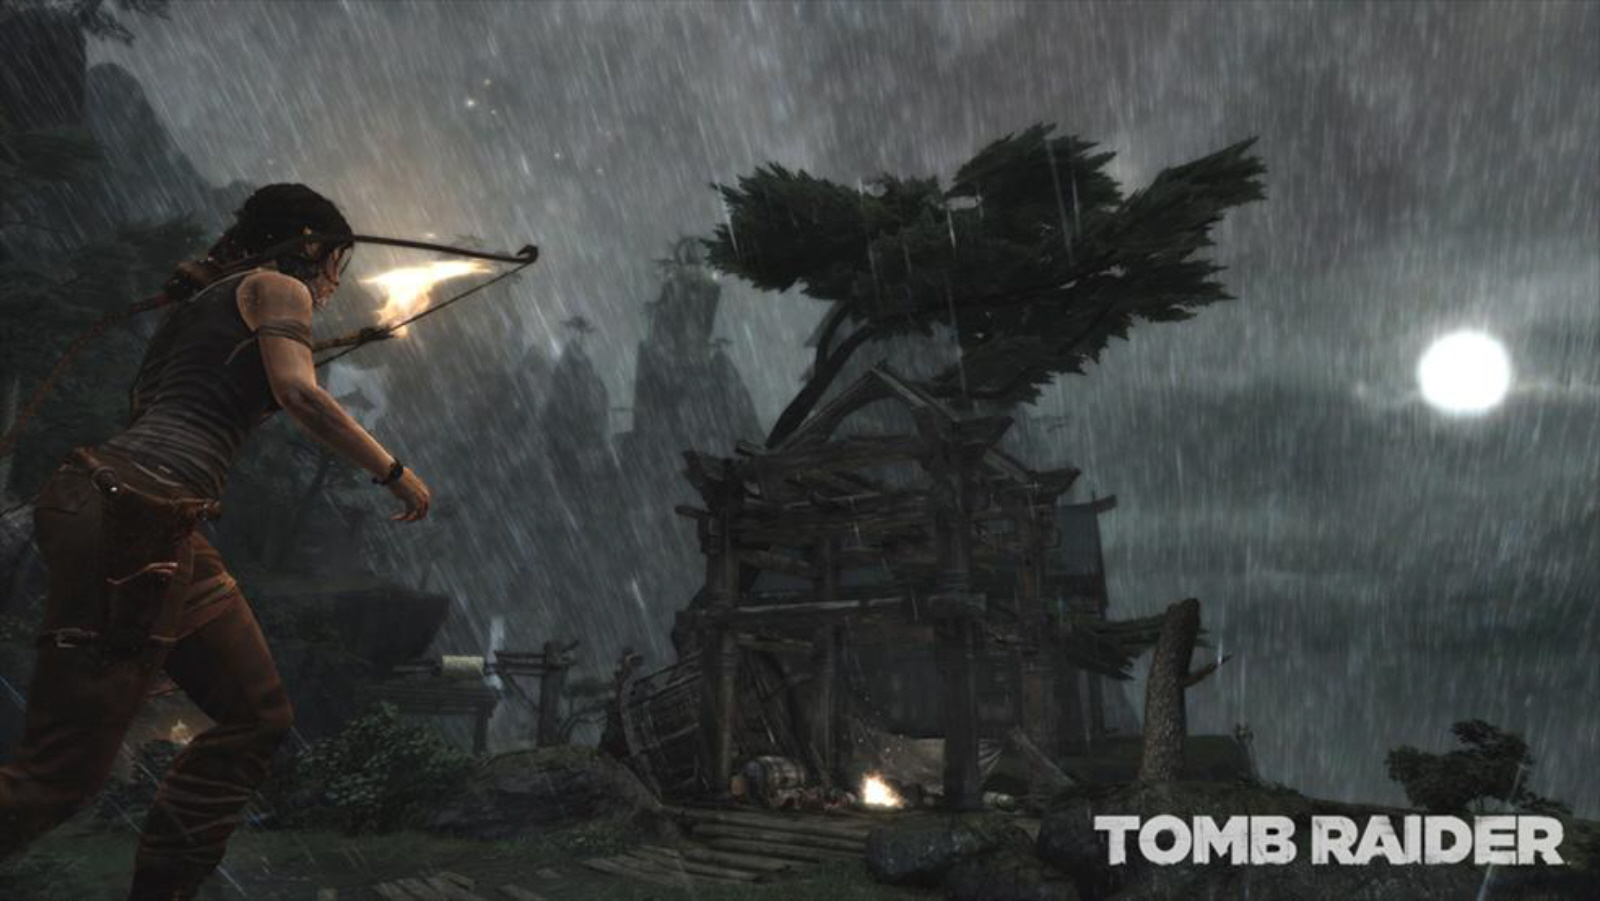 Tomb Raider 2013 Release Date Is Early Next Year For New Videogame